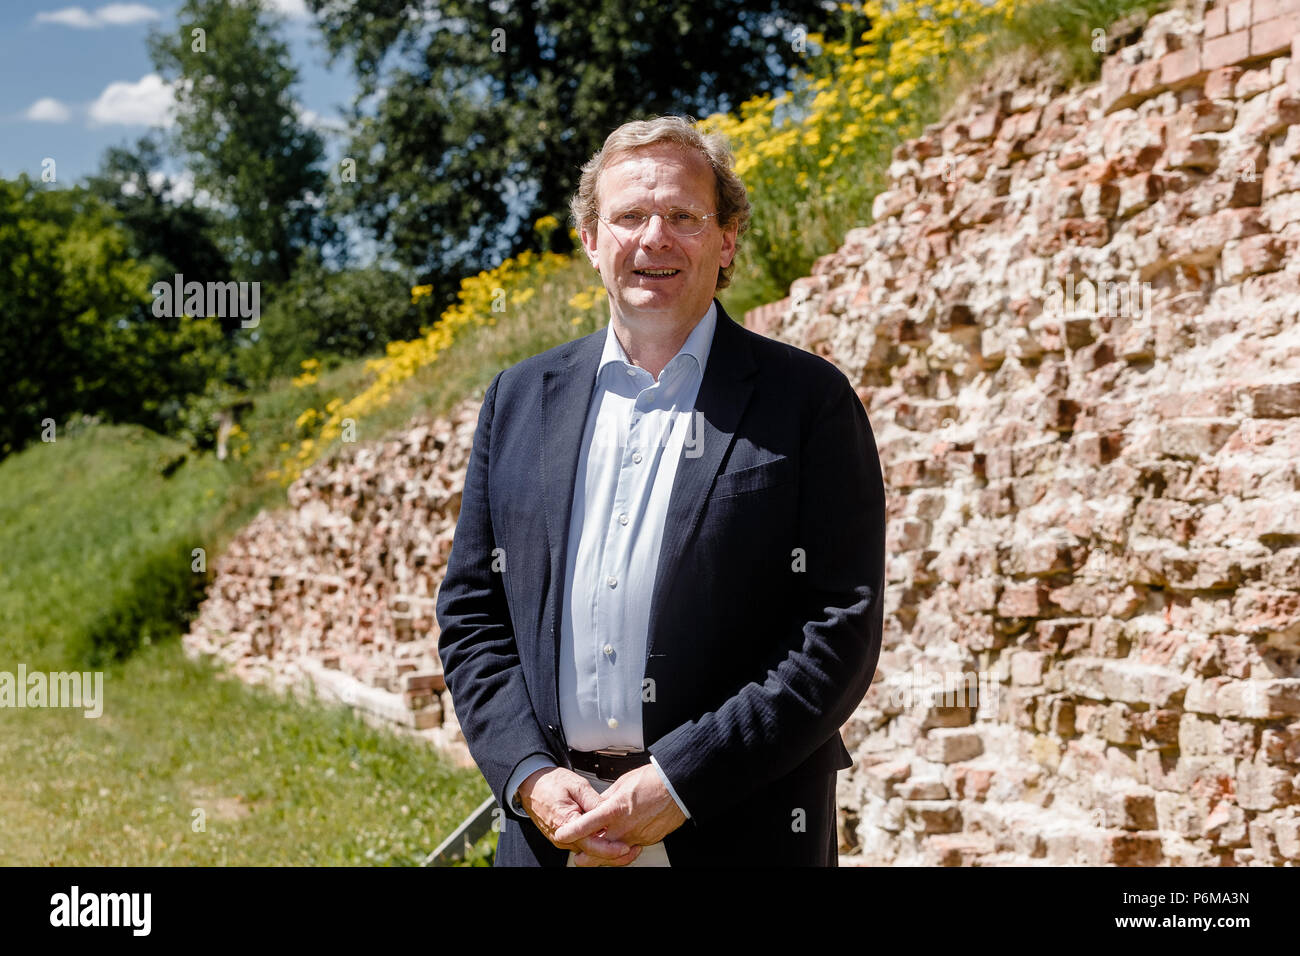 01 July 2018, Germany: Claus von Carnap-Bornheim, managing director of the Stiftung Schleswig-Holsteinischer Landesmuseen (Foundation of Schleswig-Holstein State Museums), standing in front of the Danevirke fortification. Danevirke was entered into the UNESCO World Heritage List, along with the Haitabu Viking site, on 30 June 2018. Photo: Markus Scholz/dpa - Stock Image